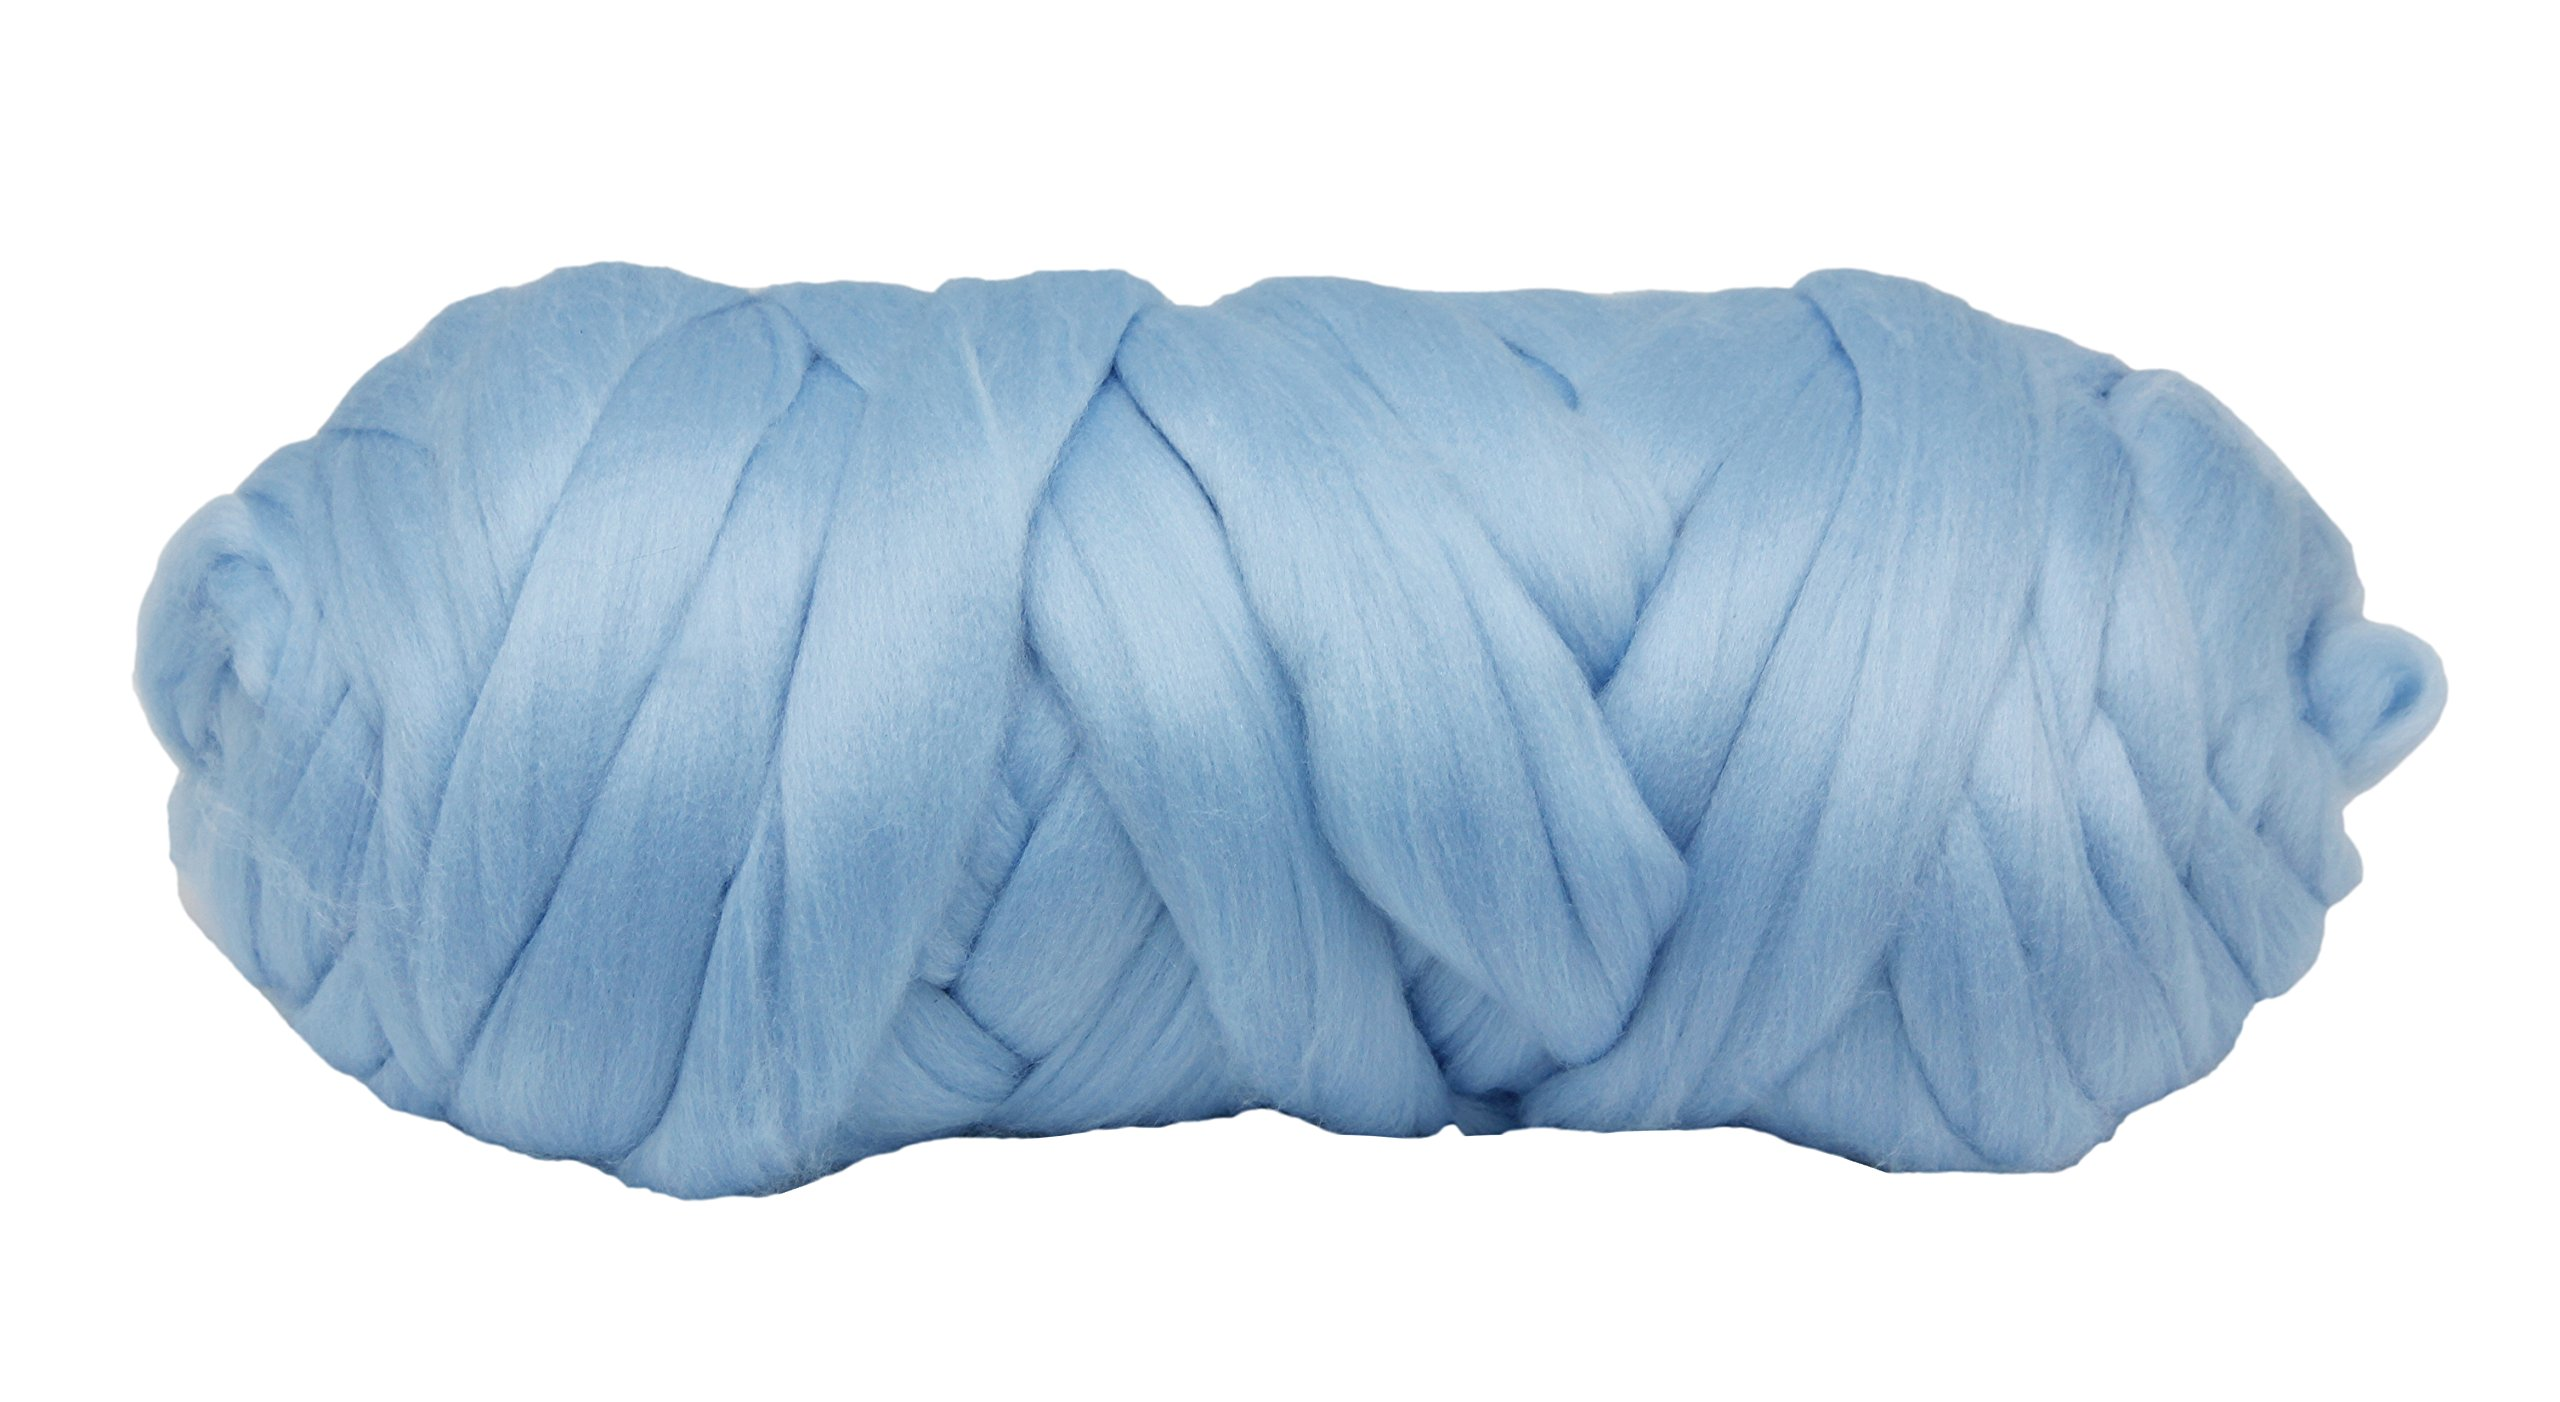 Giant Super Chunky Yarn Polyester-2.2 lbs (44 Yards) Bulky Roving Solid Color Yarn